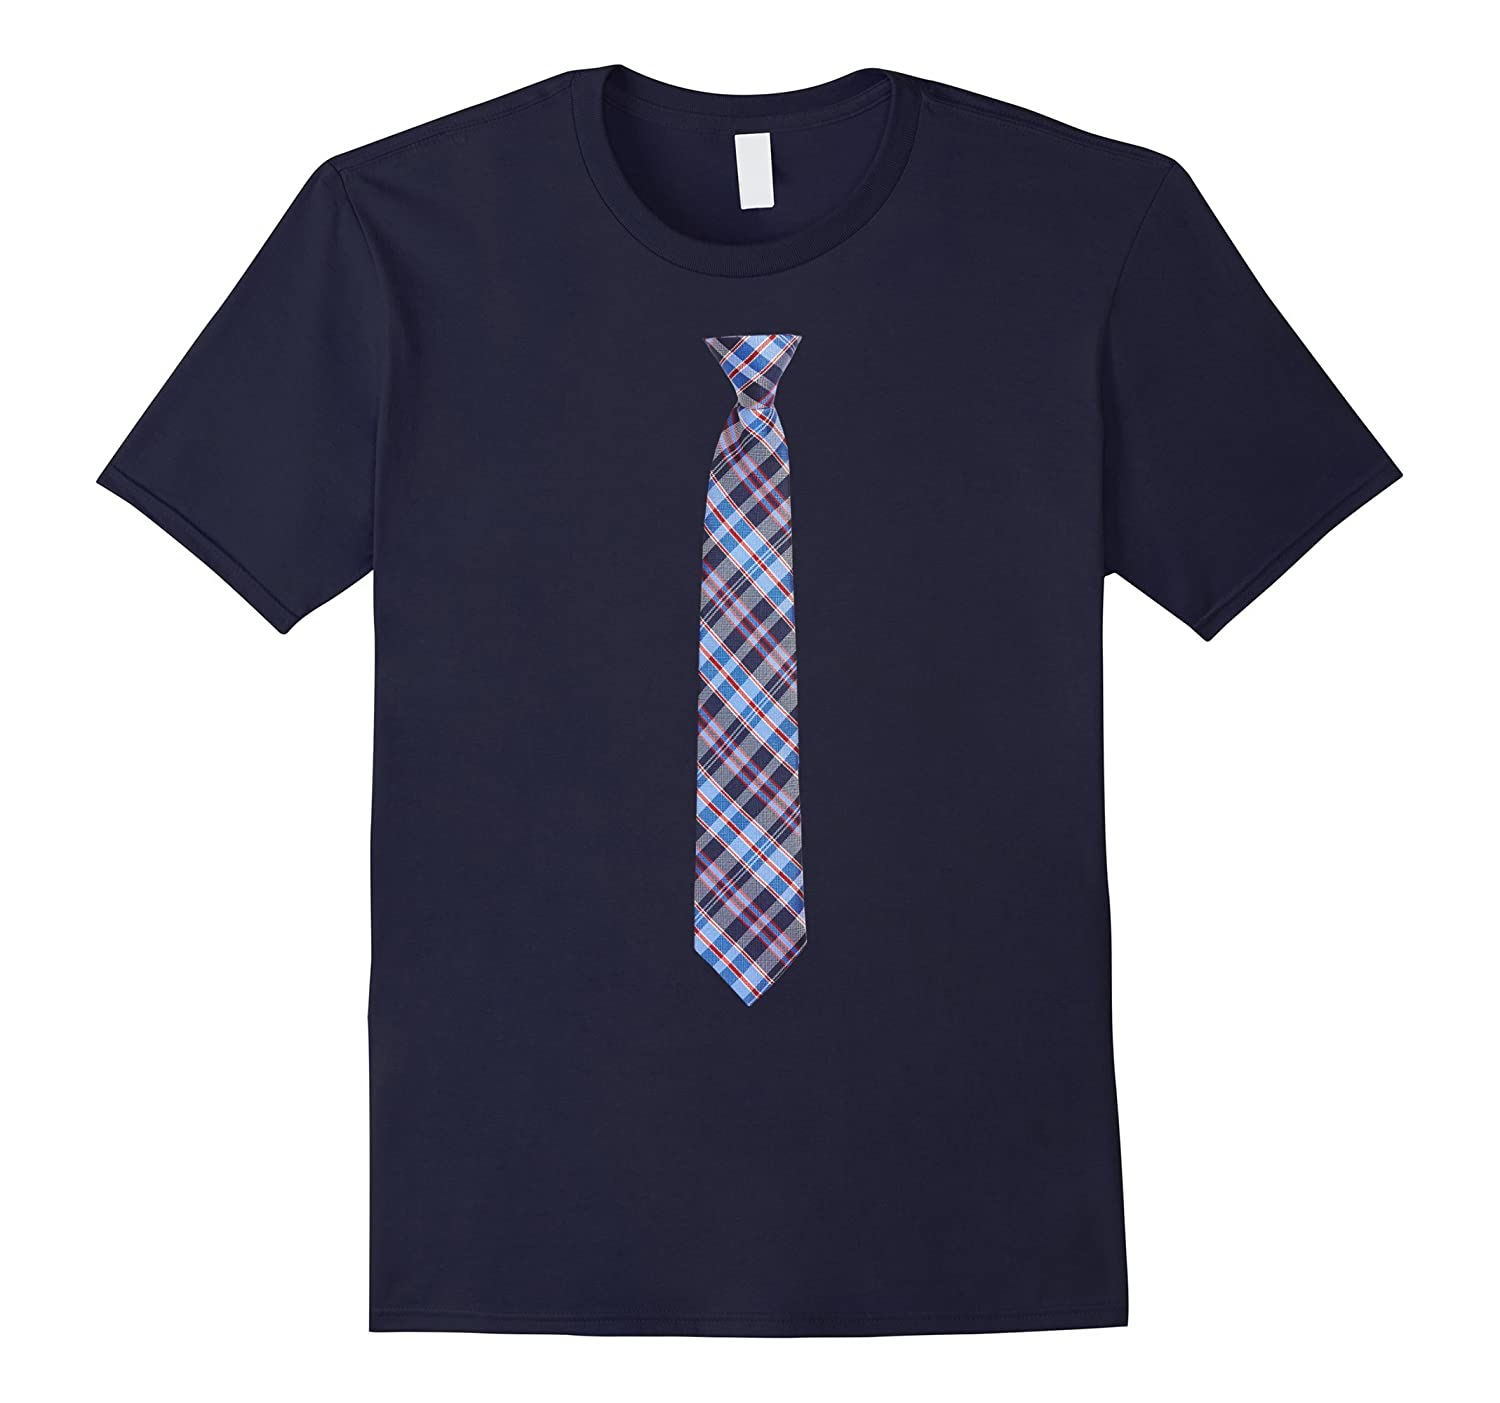 Necktie Dress T-Shirt for Weddings, Prom, Office, Receptions-T-Shirt